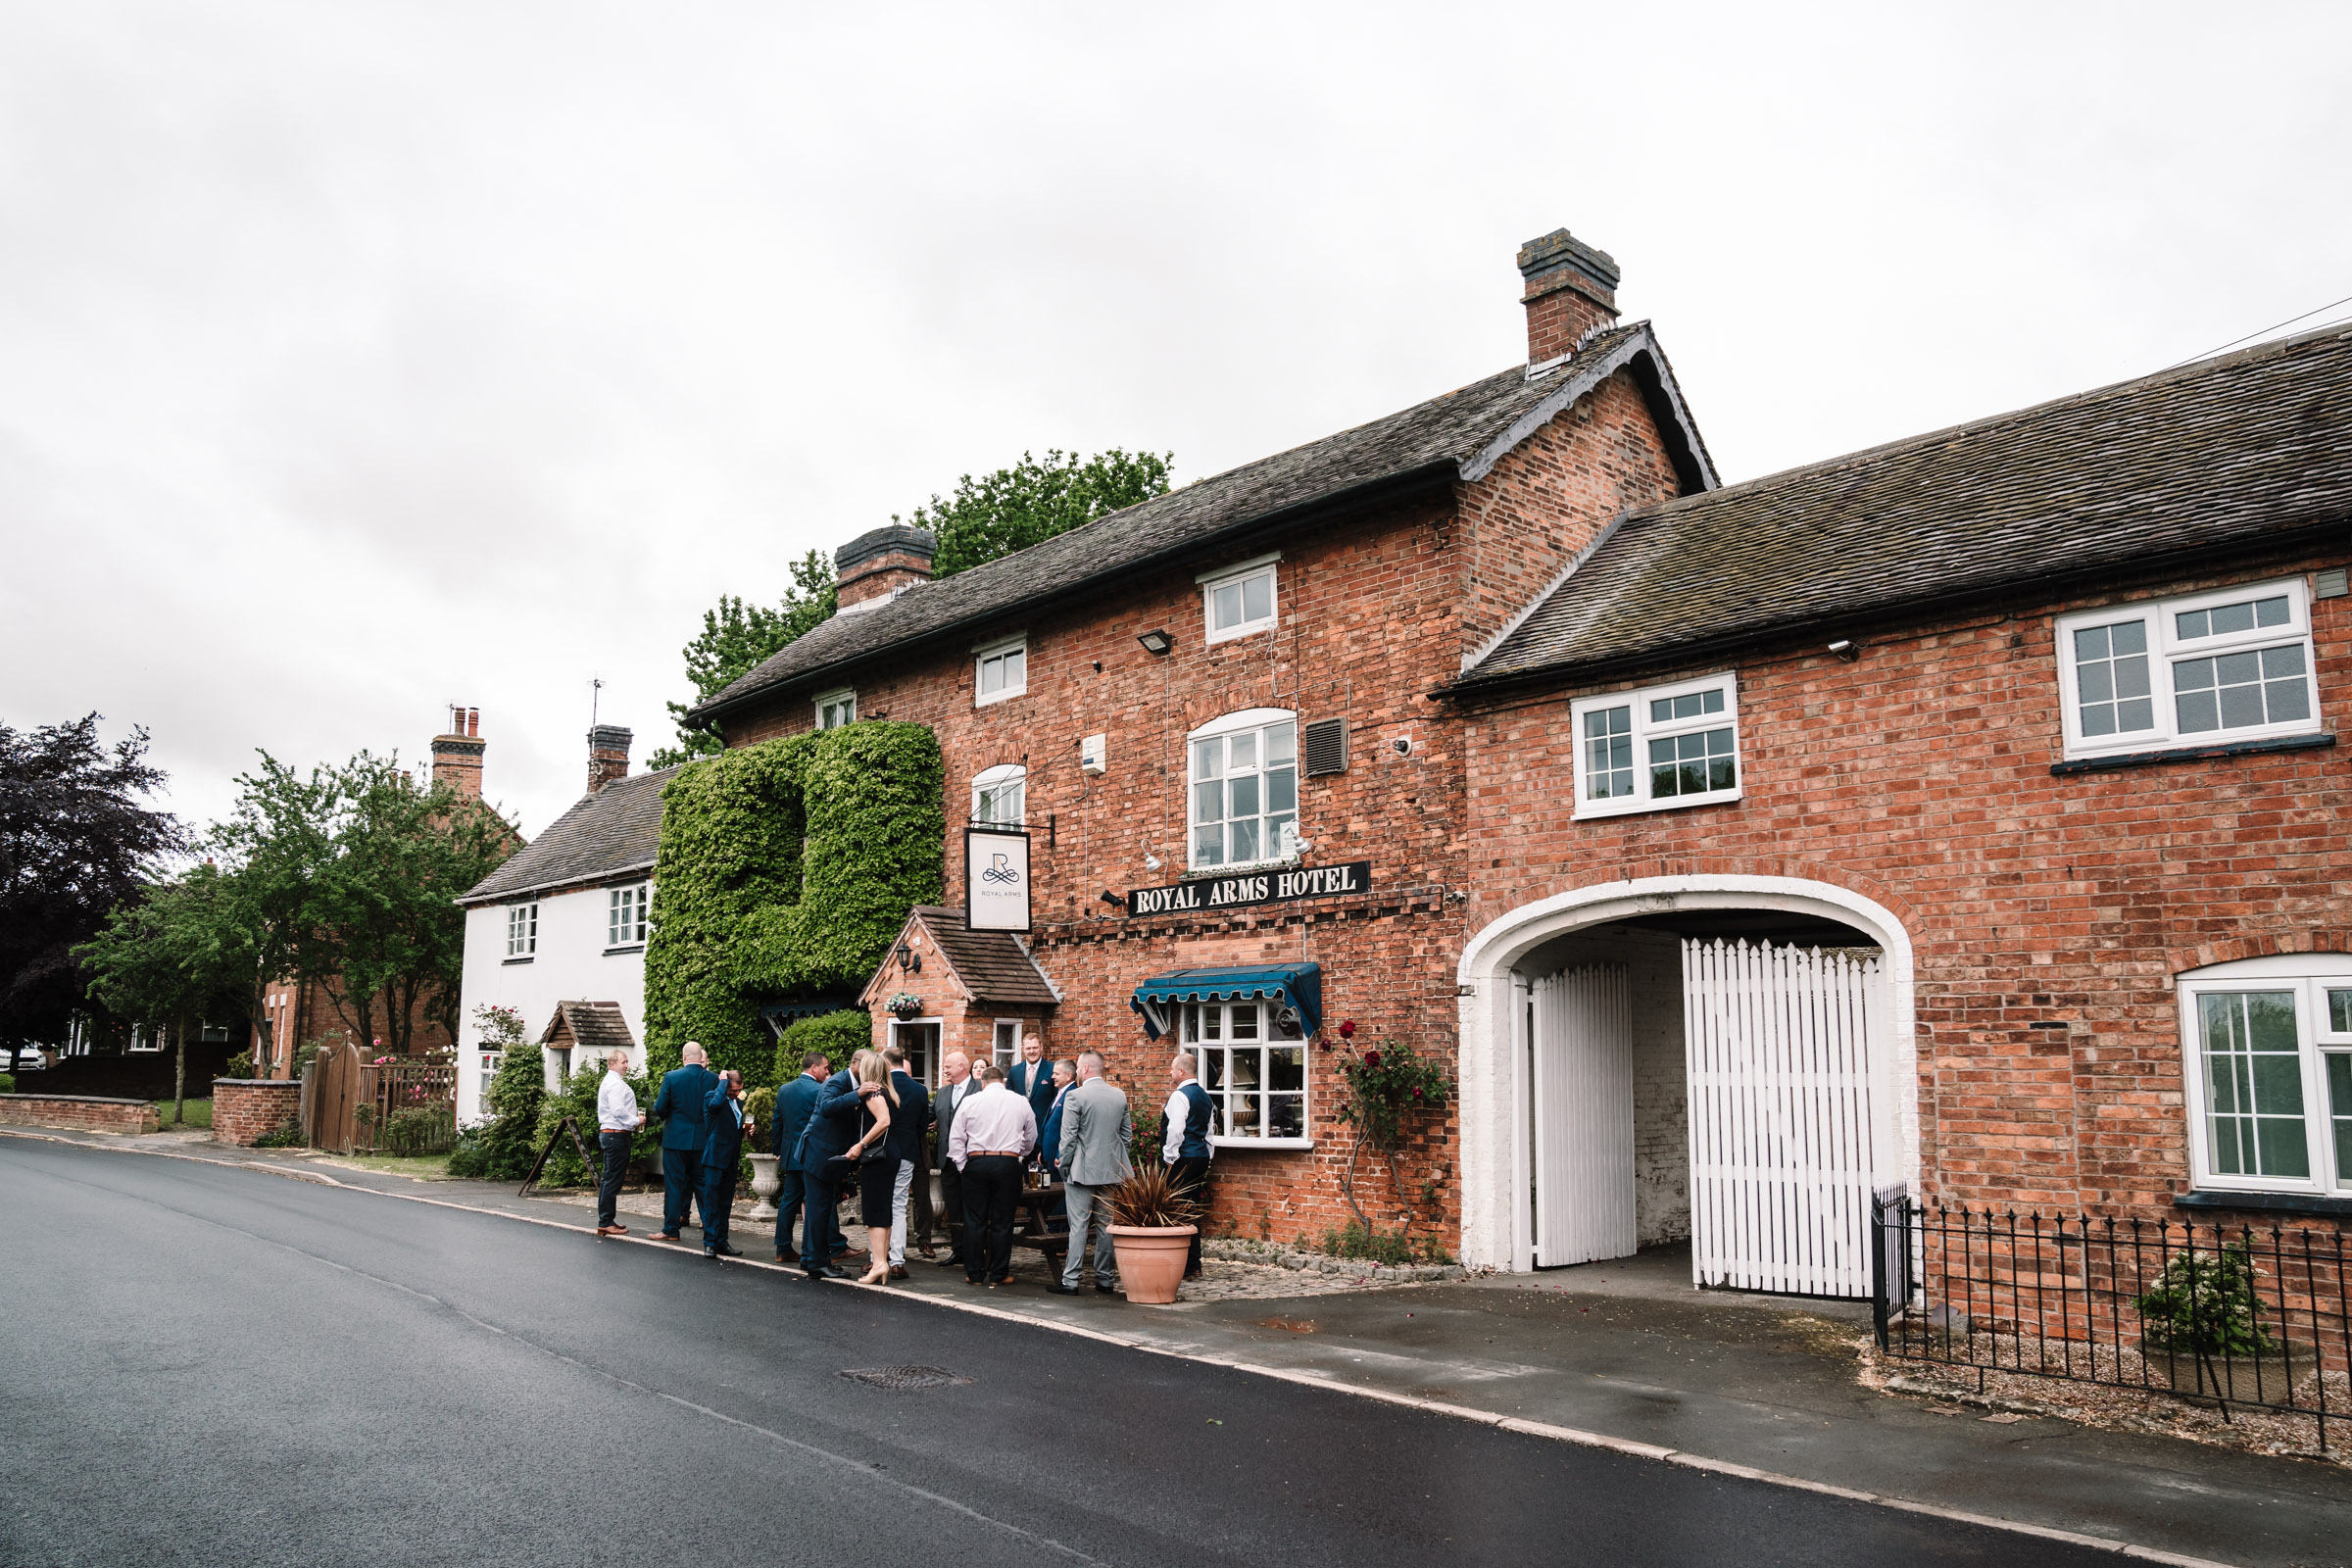 The royal arms hotel, Sutton Cheney, Leicester